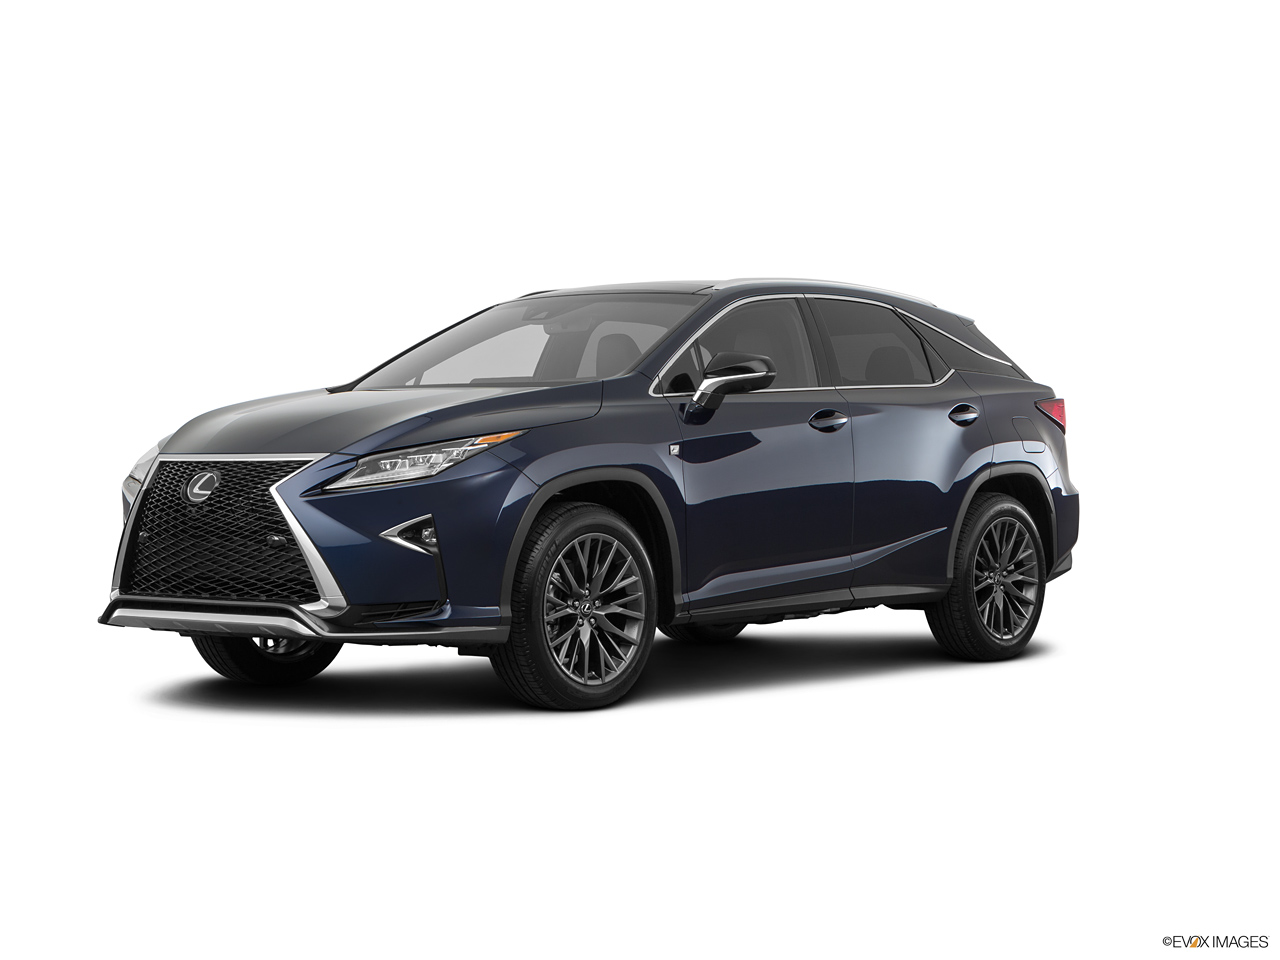 car pictures list for lexus rx 2018 350 f sport bahrain yallamotor. Black Bedroom Furniture Sets. Home Design Ideas